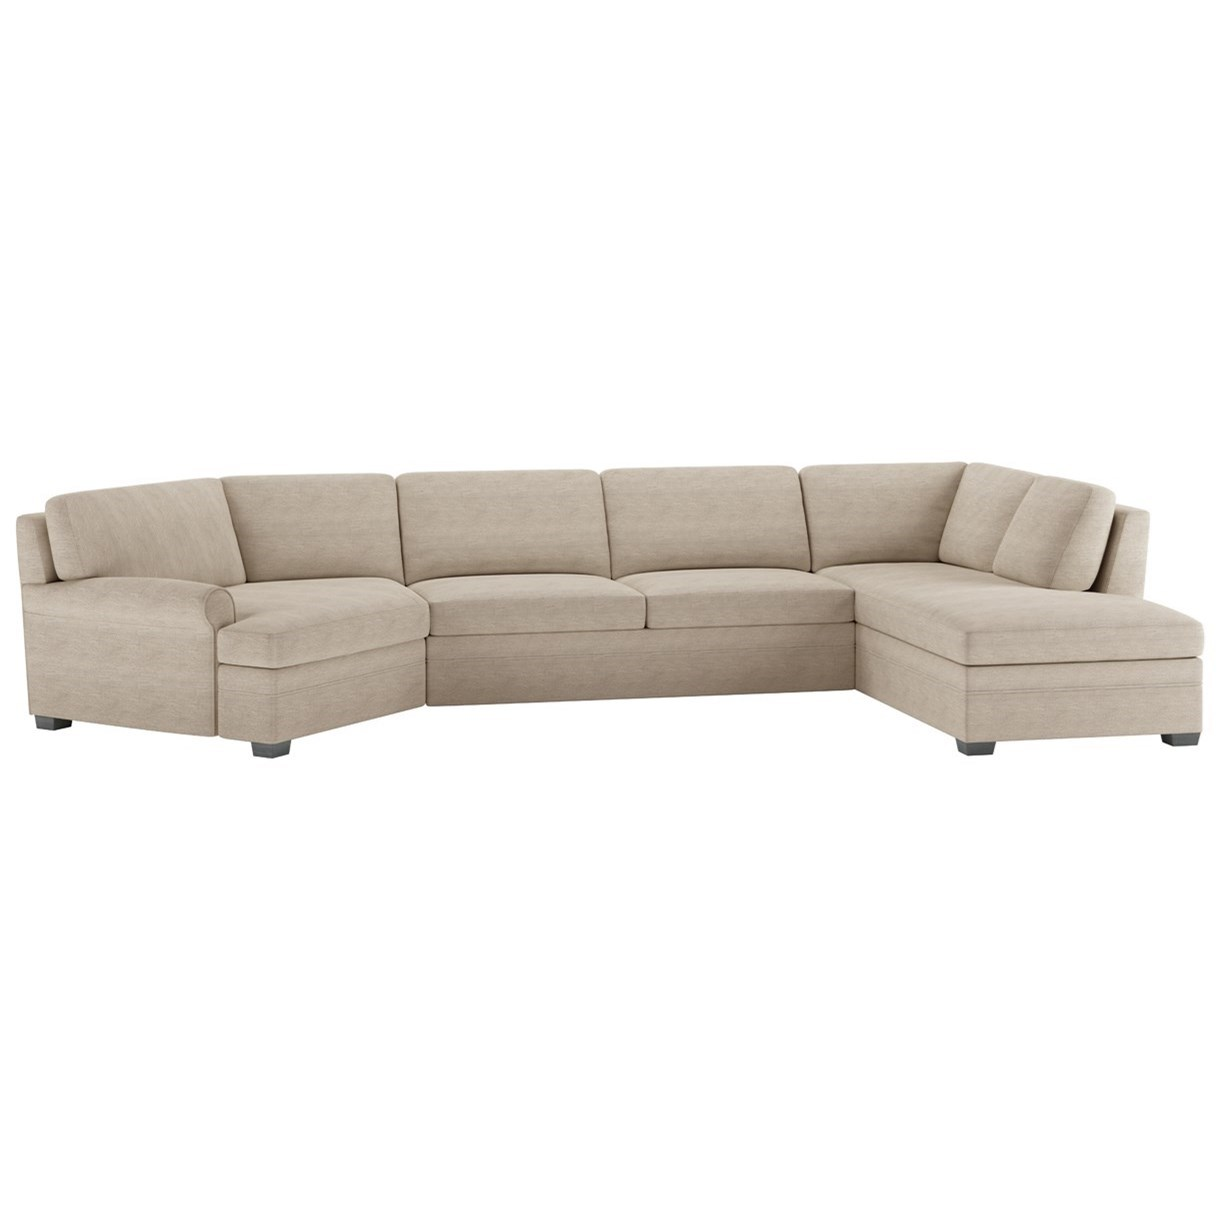 3 Pc Sectional w/ Queen Sleeper & LAS Chaise